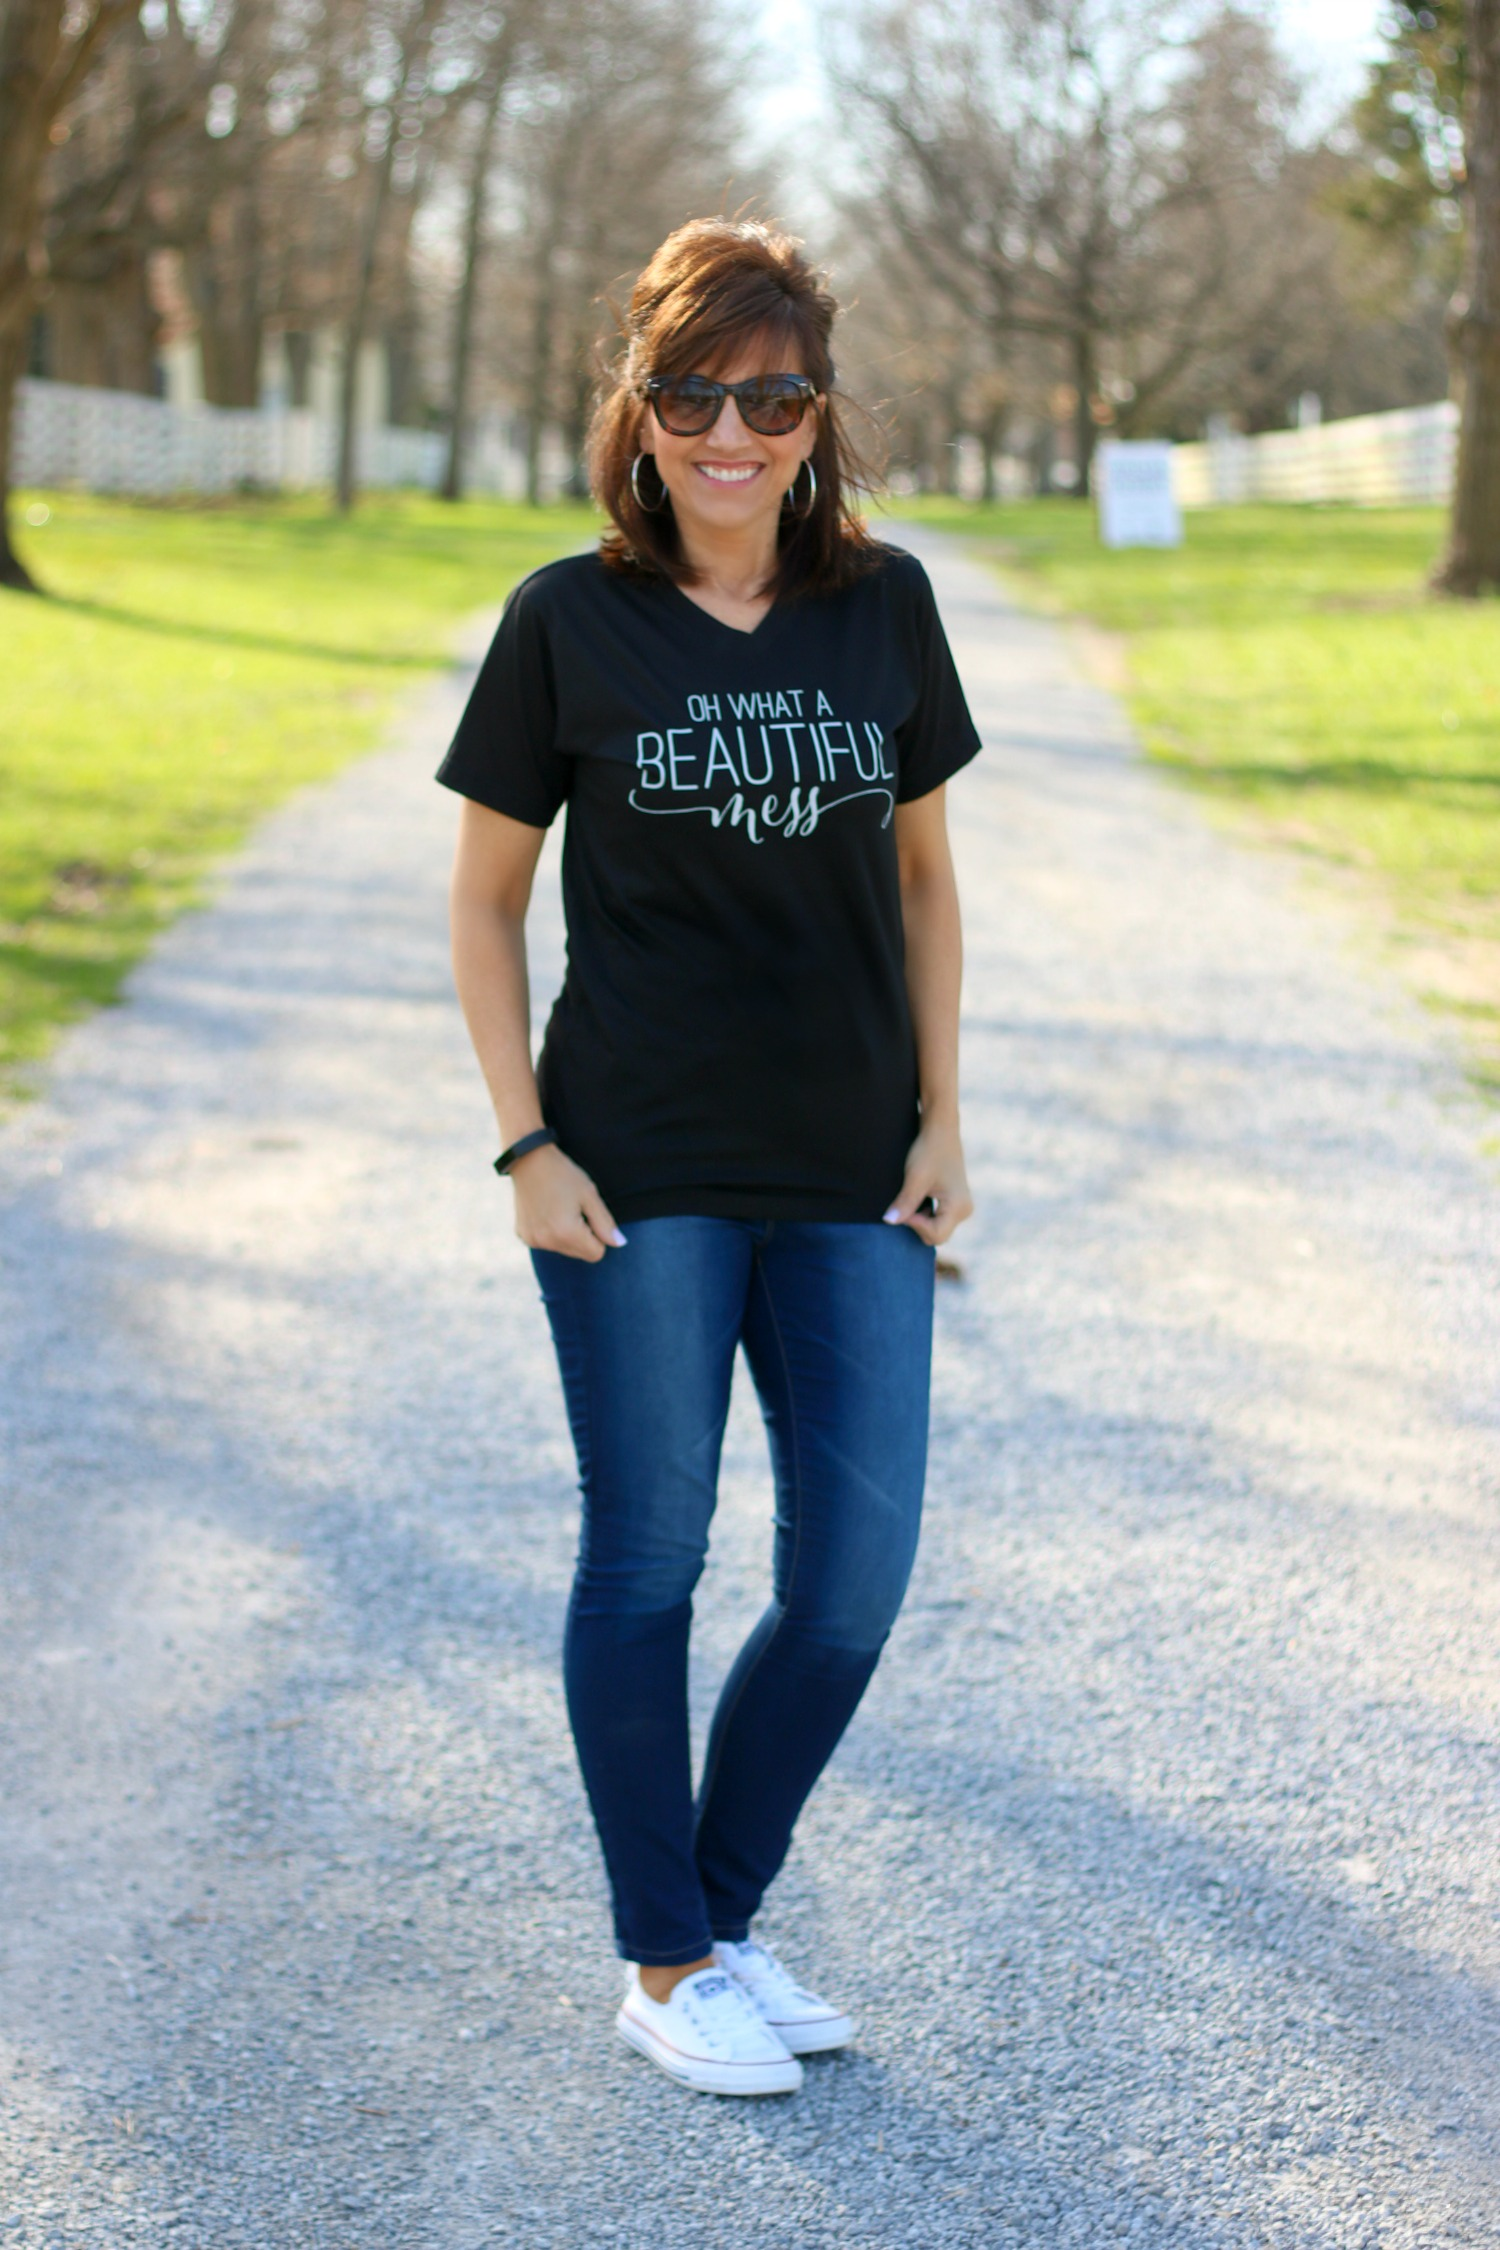 27 Days of Spring Fashion: Graphic Tees